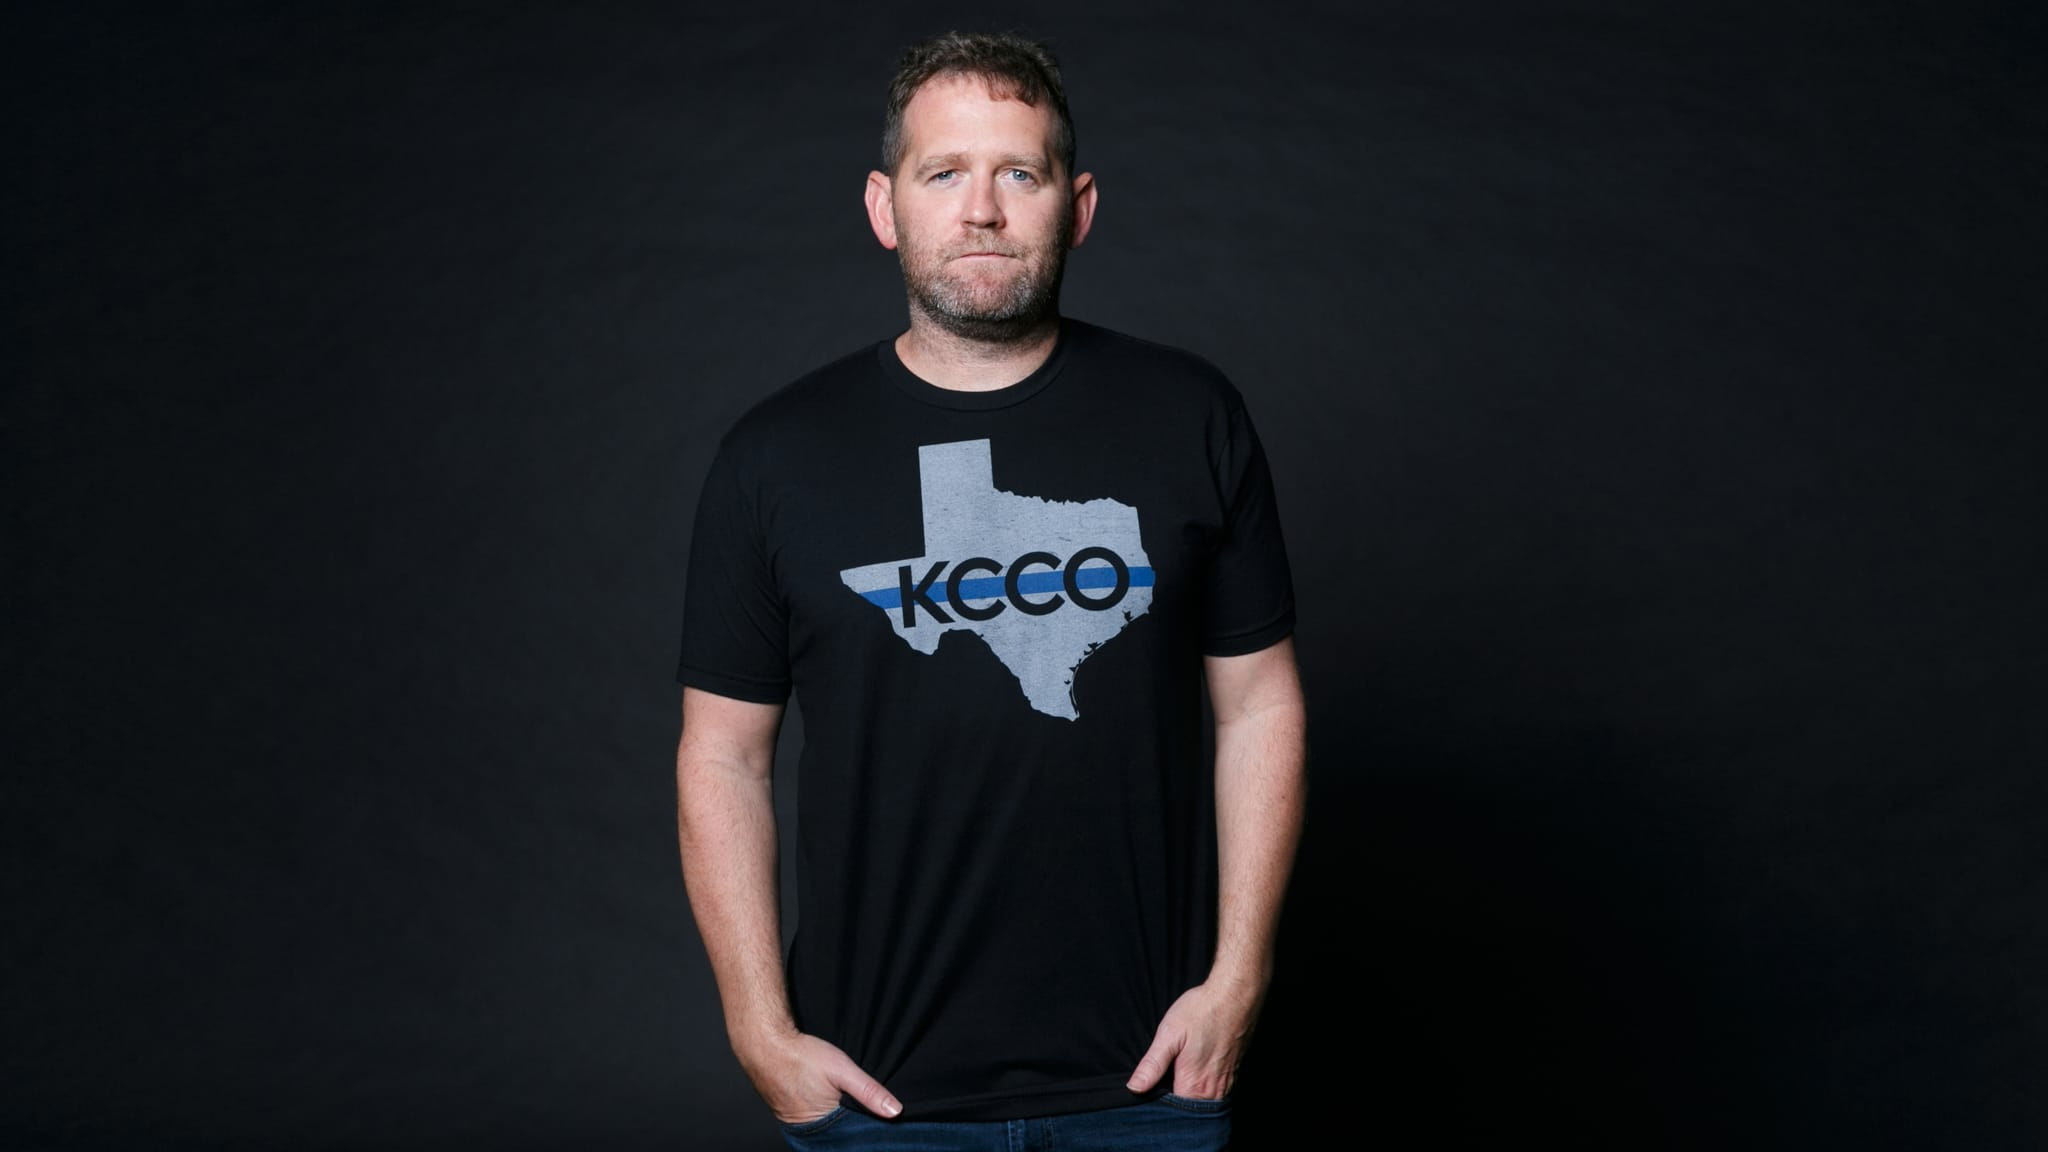 The chivery texas kcco thin blue line men 39 s t shirt for Texas thin blue line shirt